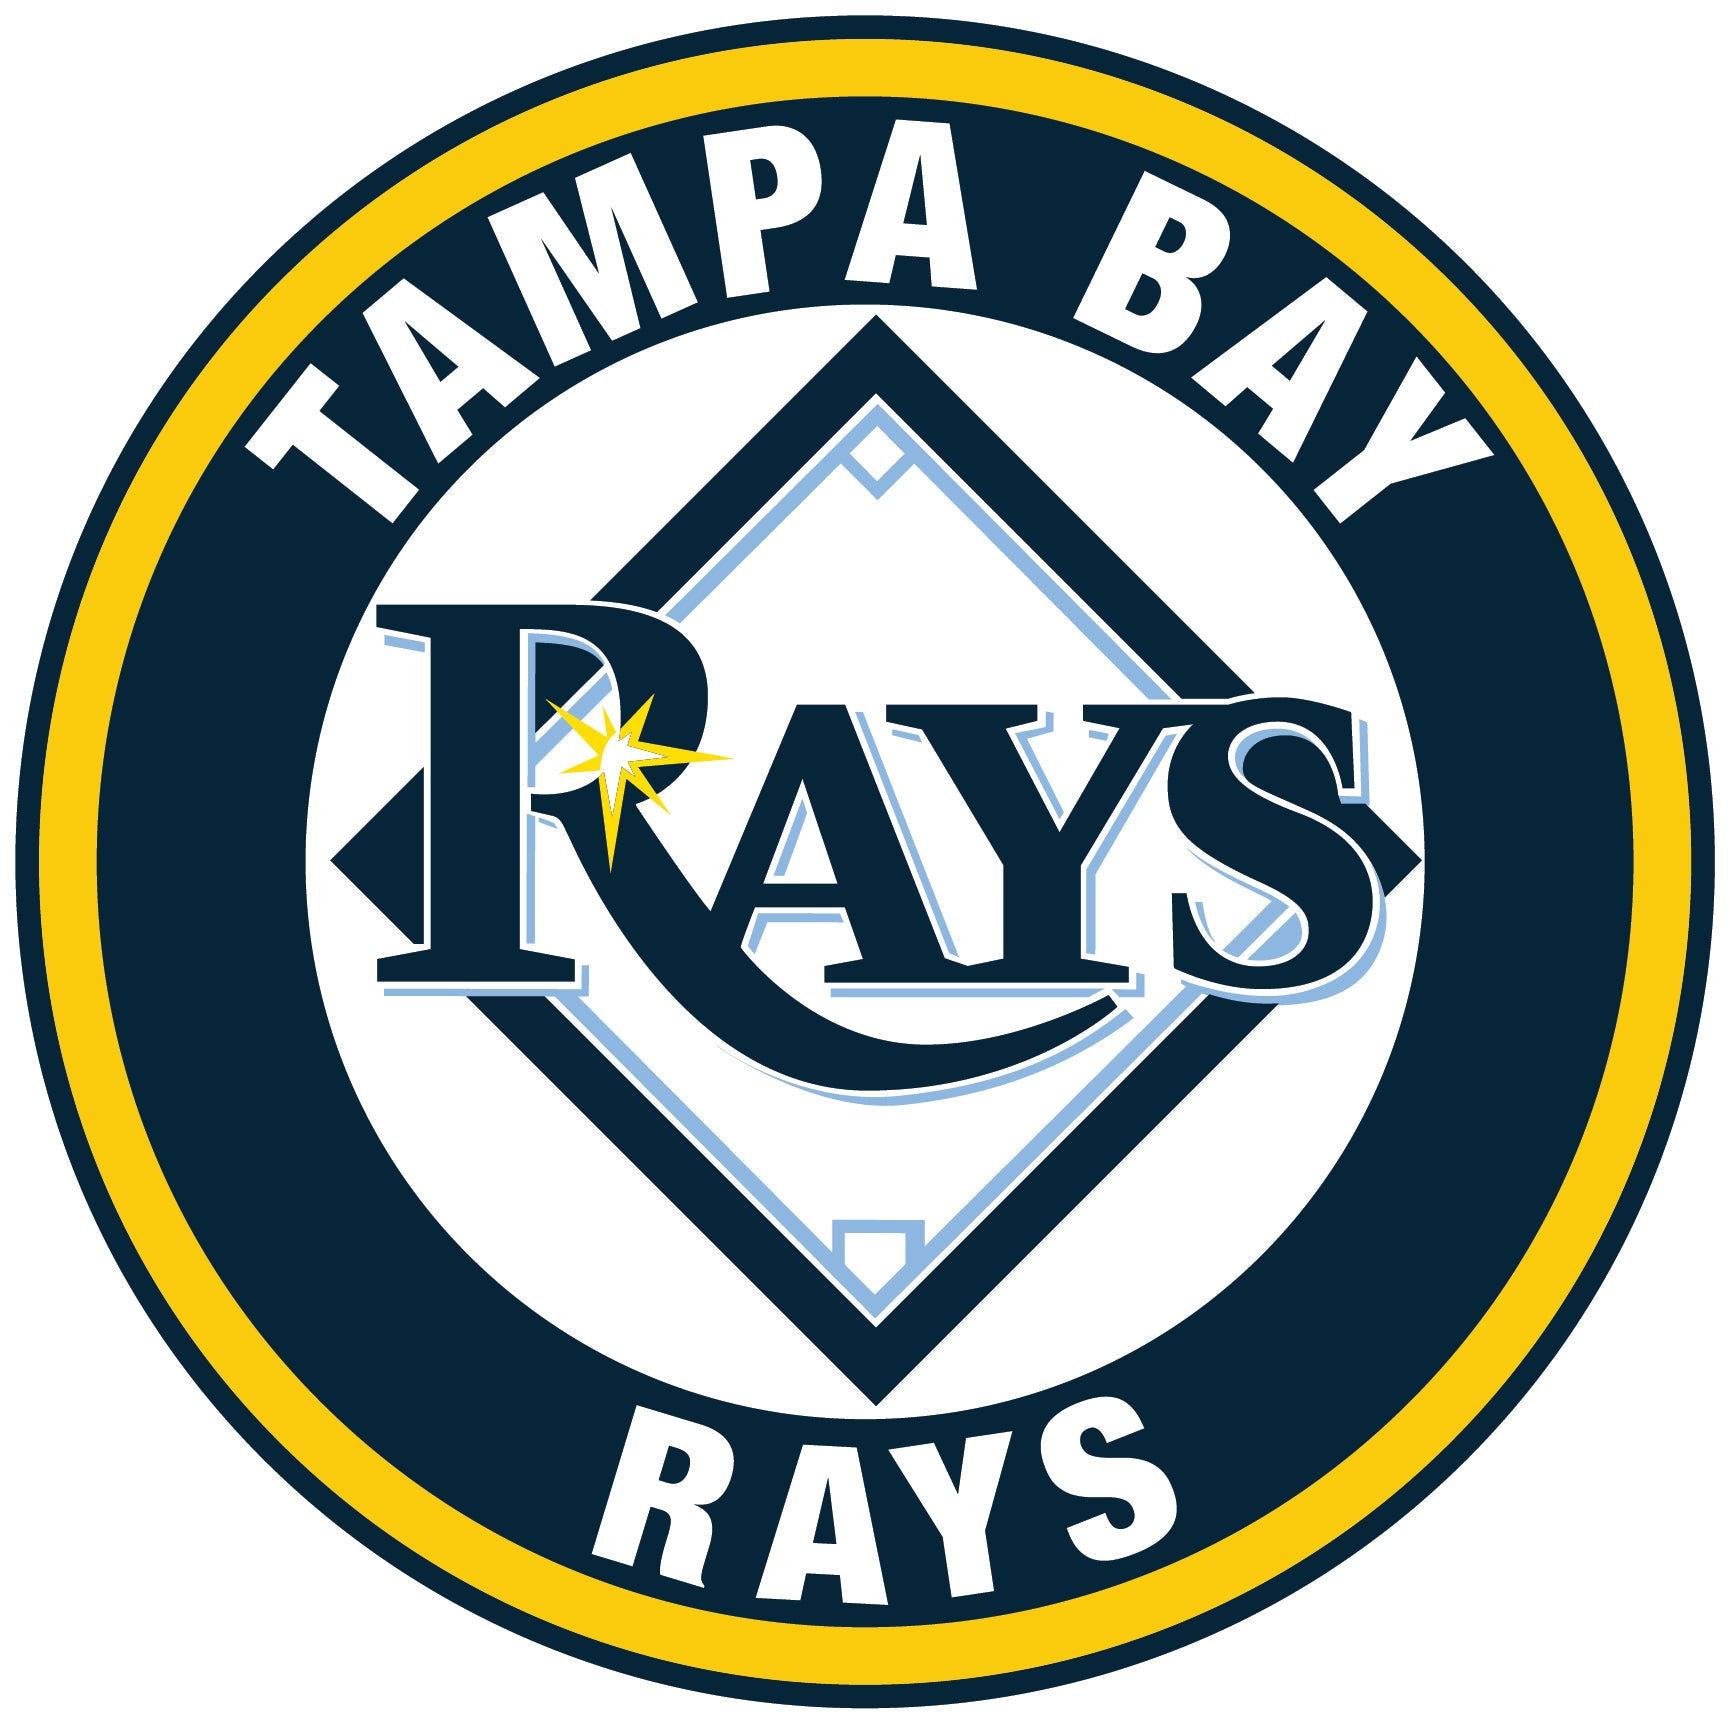 Tampa Bay Rays logo Circle Logo Vinyl Decal Sticker 5 sizes!! | Sportz For Less